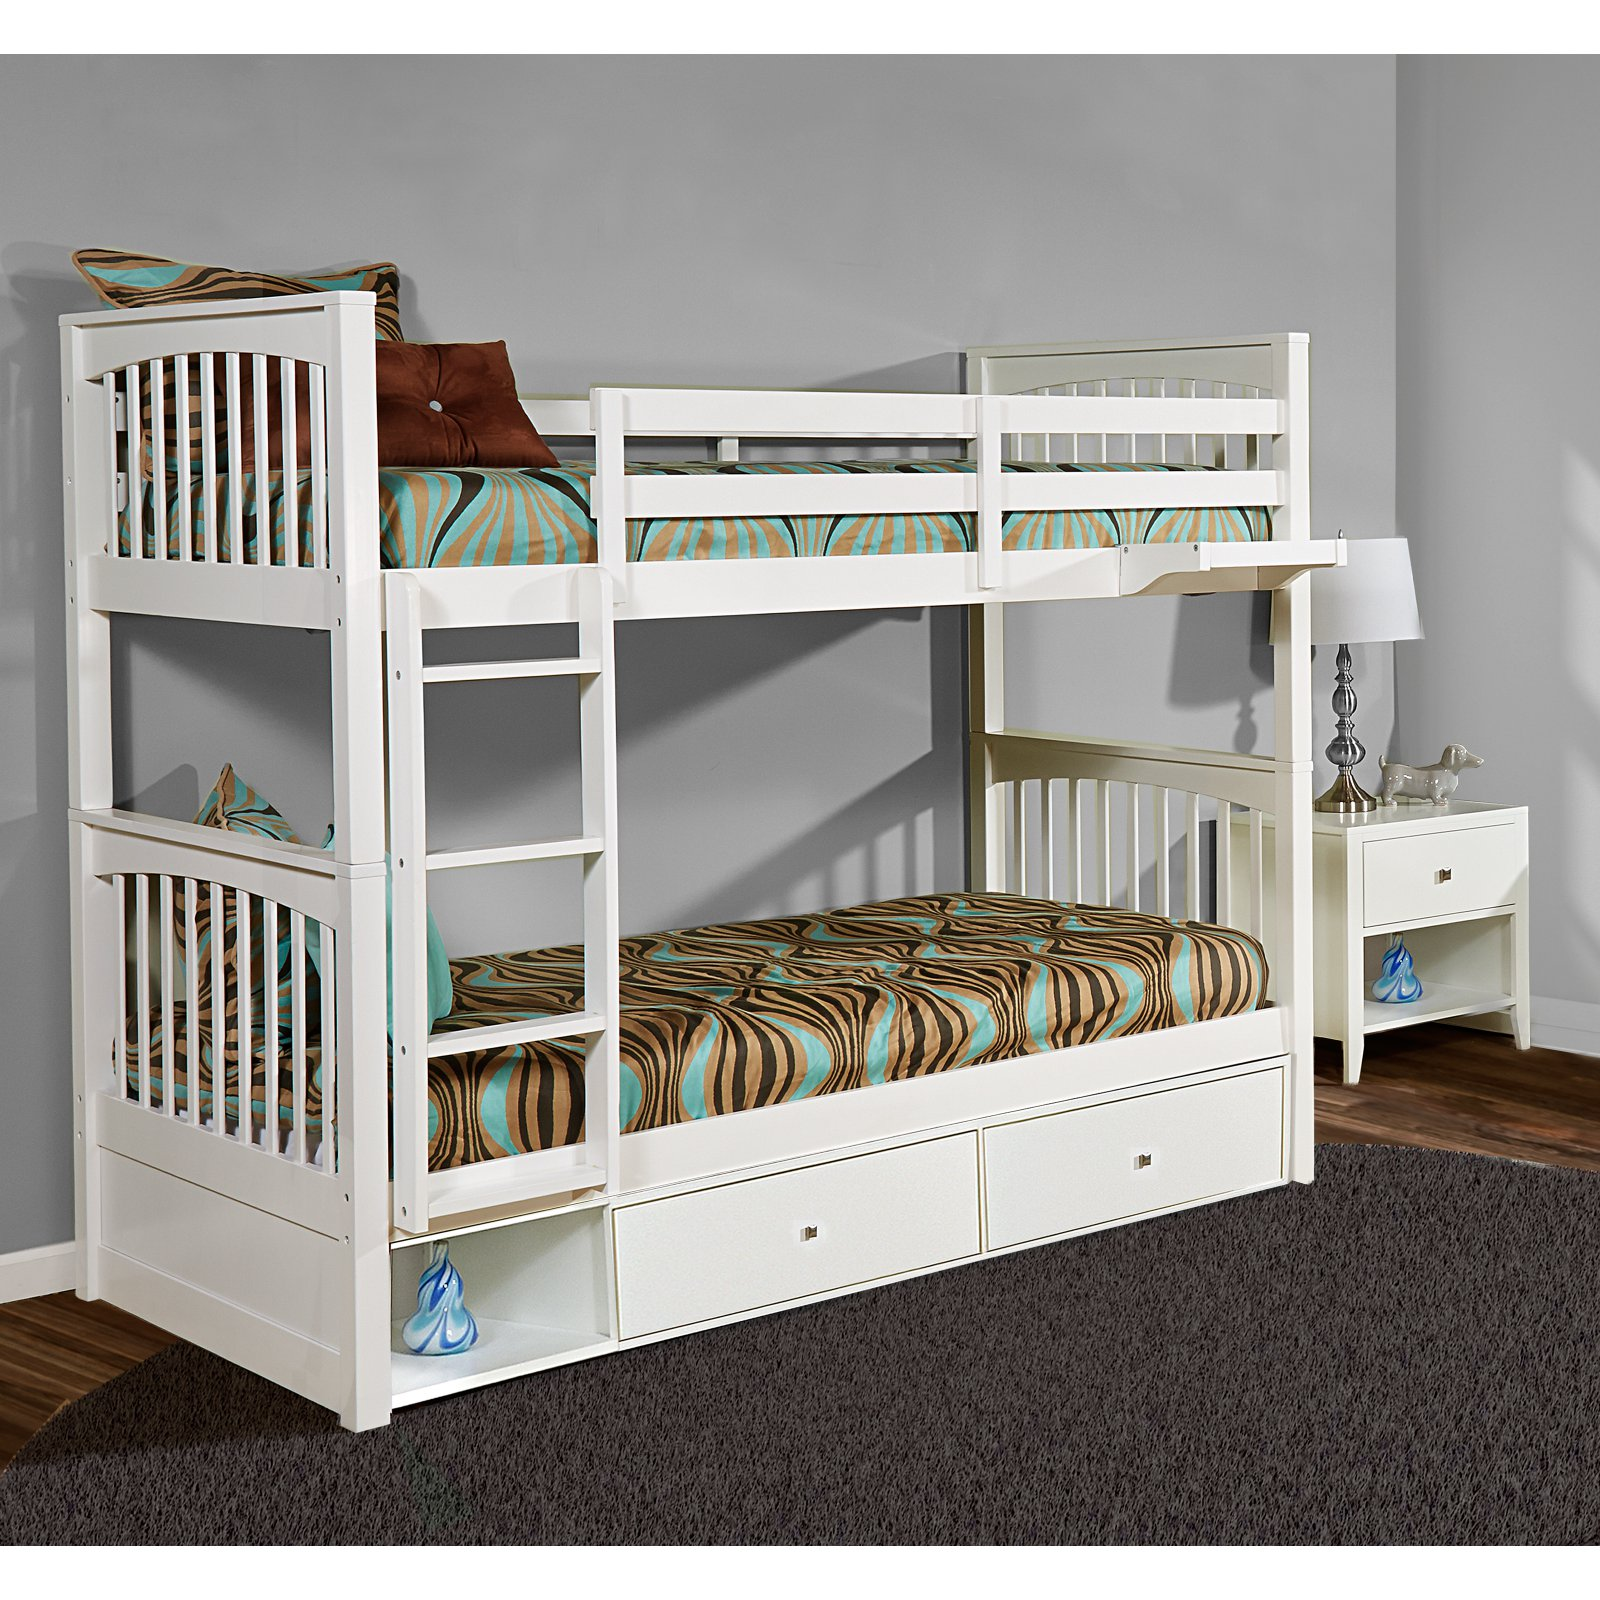 Hillsdale Pulse Twin Bunk with Storage, Multiple Colors